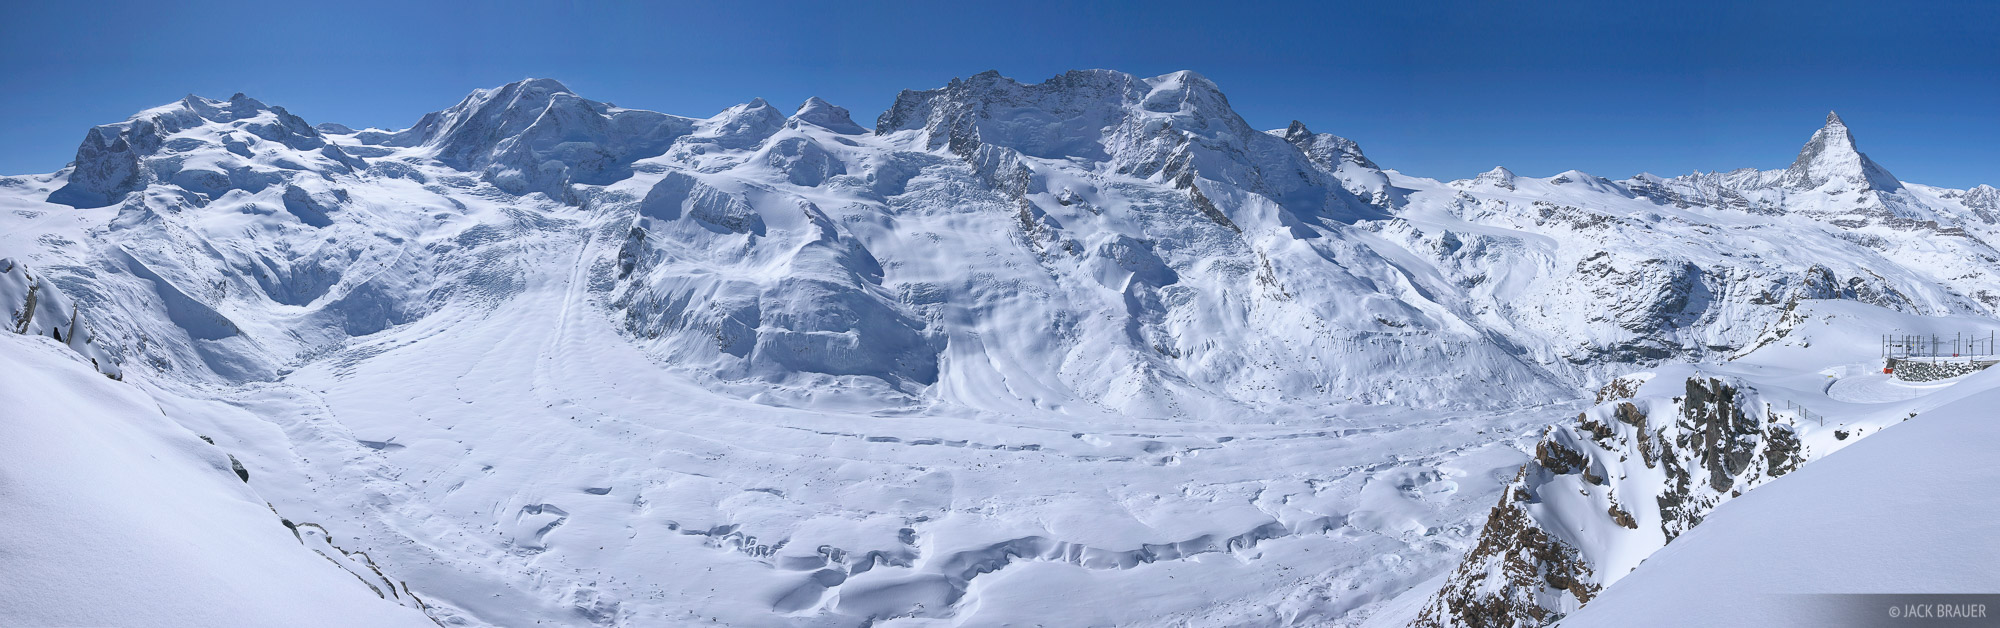 Gornergrat, Gornergletscher, glacier, panorama, Zermatt, Switzerland, winter, rugged, monte rosa, monterosa, march, photo